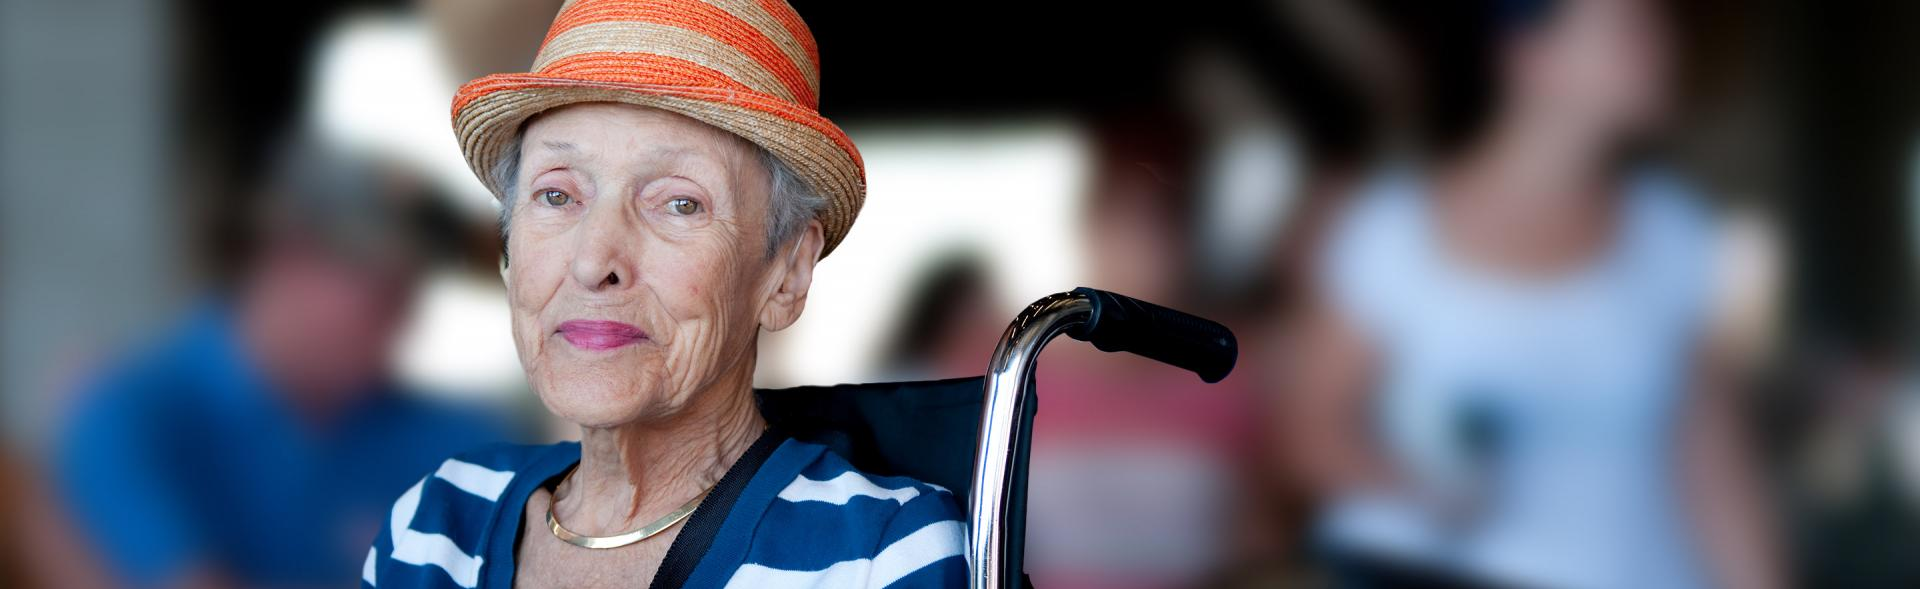 Older white woman wearing an orange striped fedora and blue and white striped shirt sitting in a wheelchair.